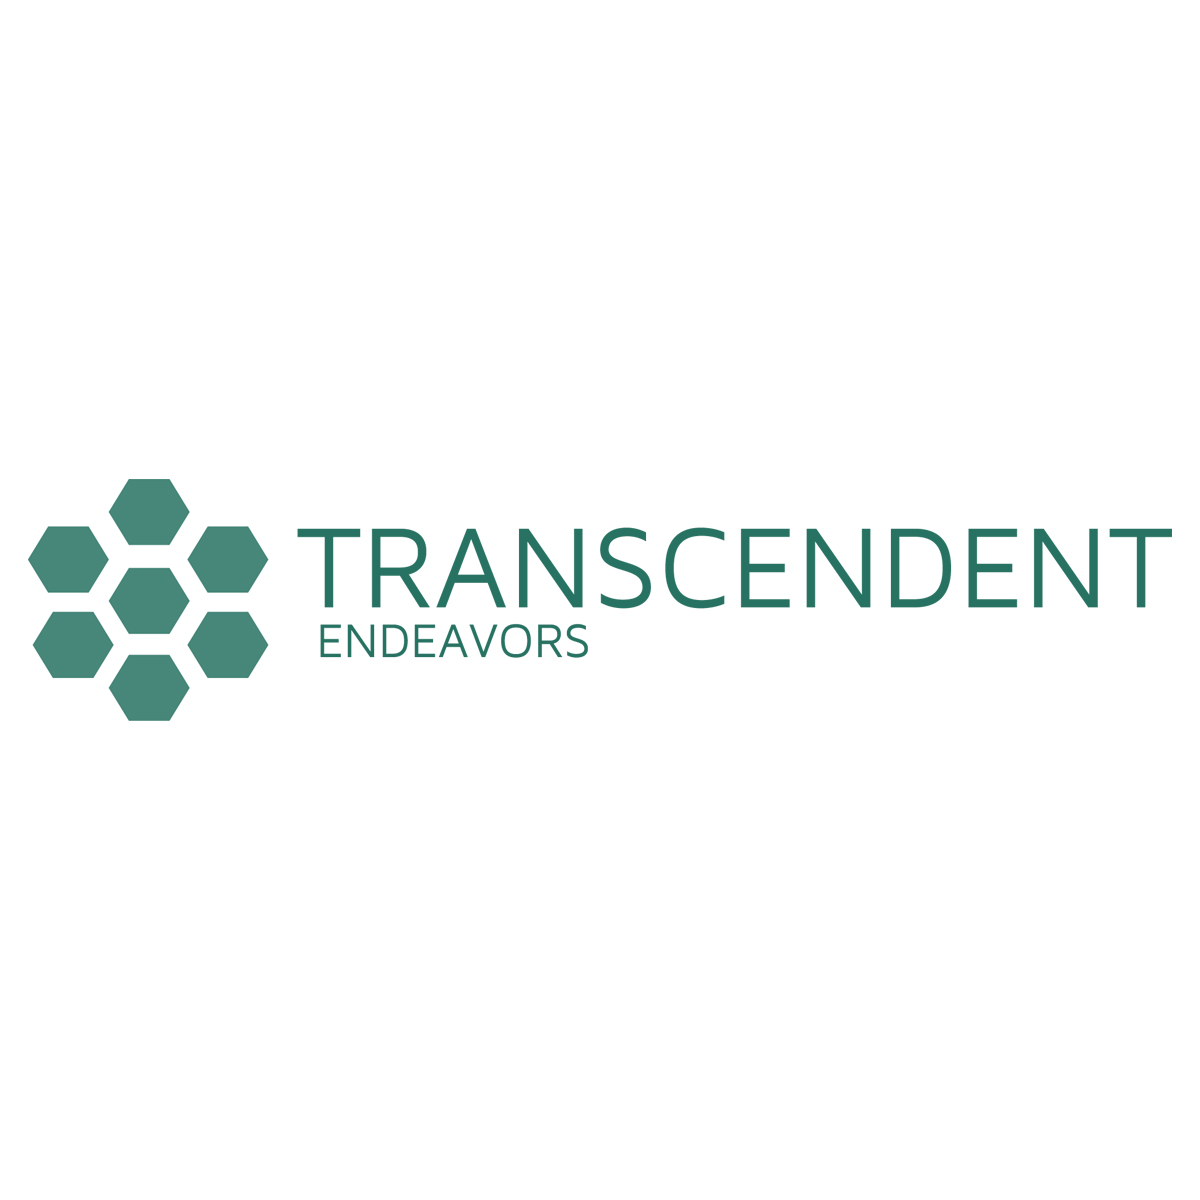 Transcendent Endeavors   Dedicated to improving the quality of life for underserved communities, and supporting the important work of the professionals and organizations that serve them.    Learn More →